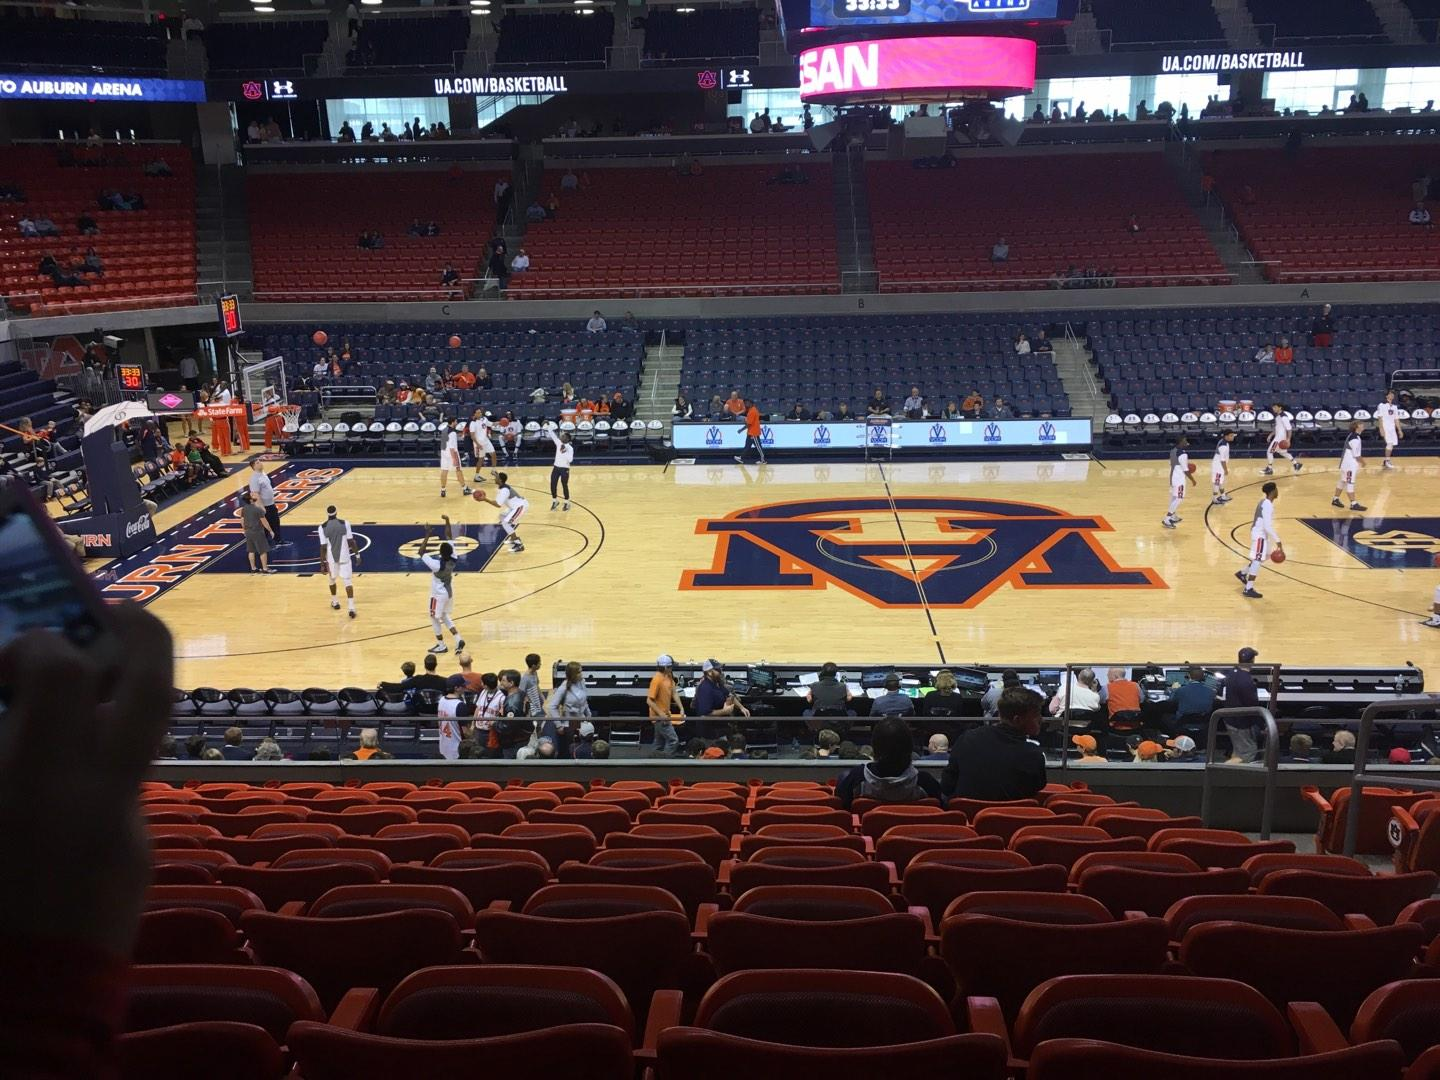 Auburn Arena Section 111 Row 18 Seat 3